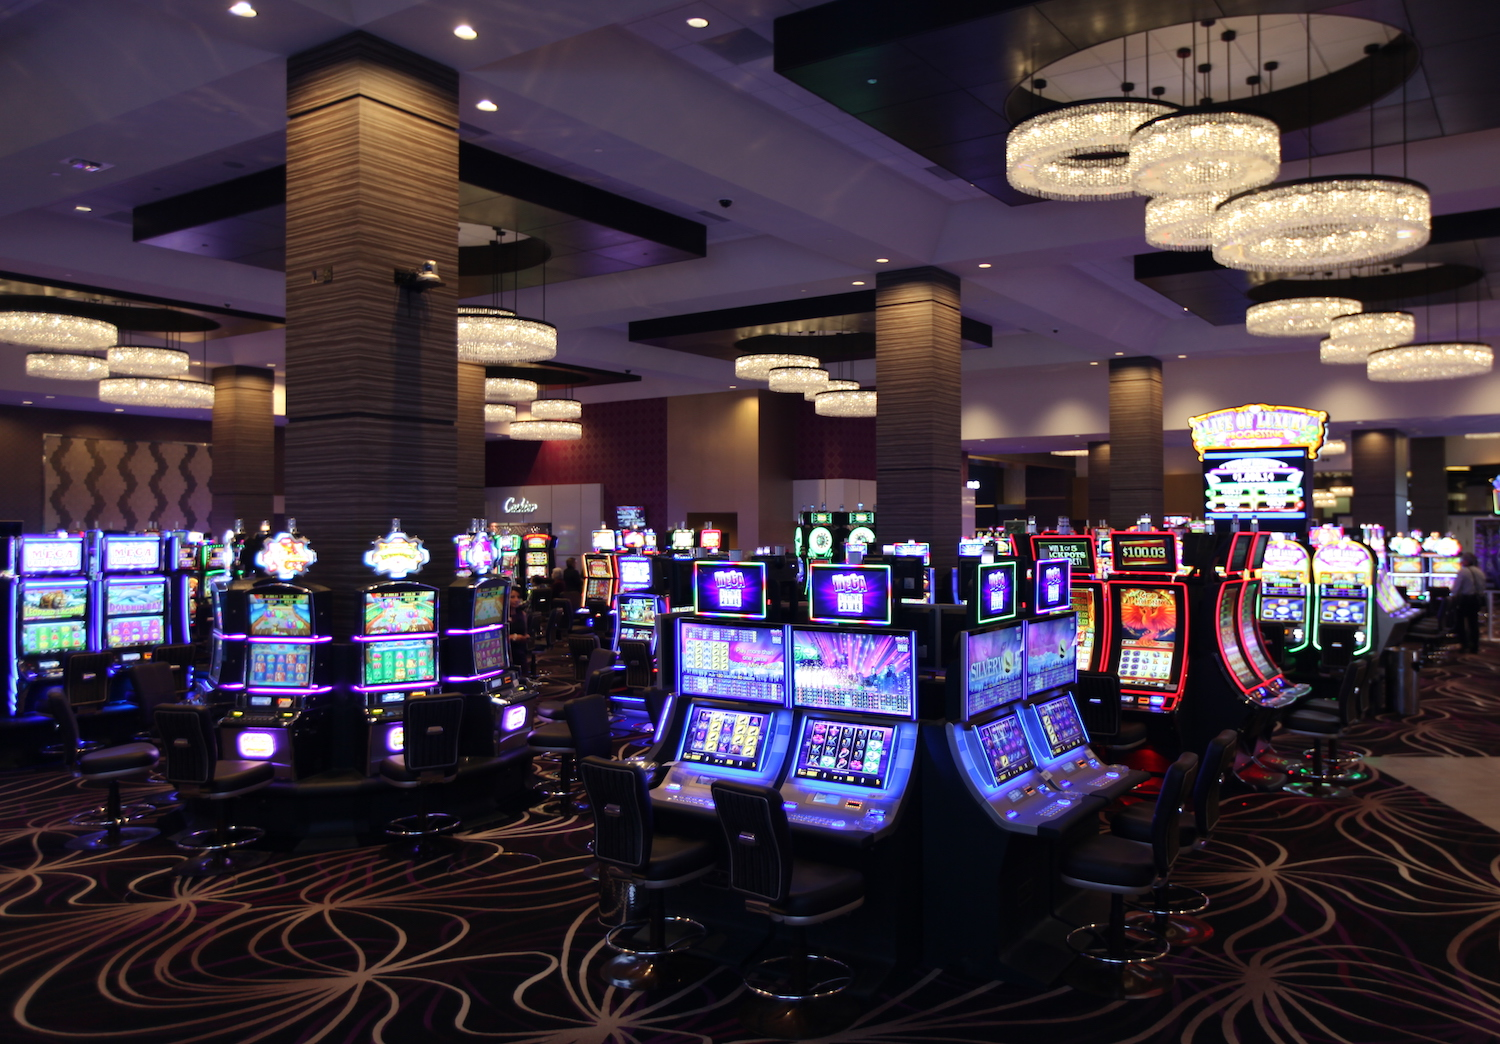 Are slots legal in california